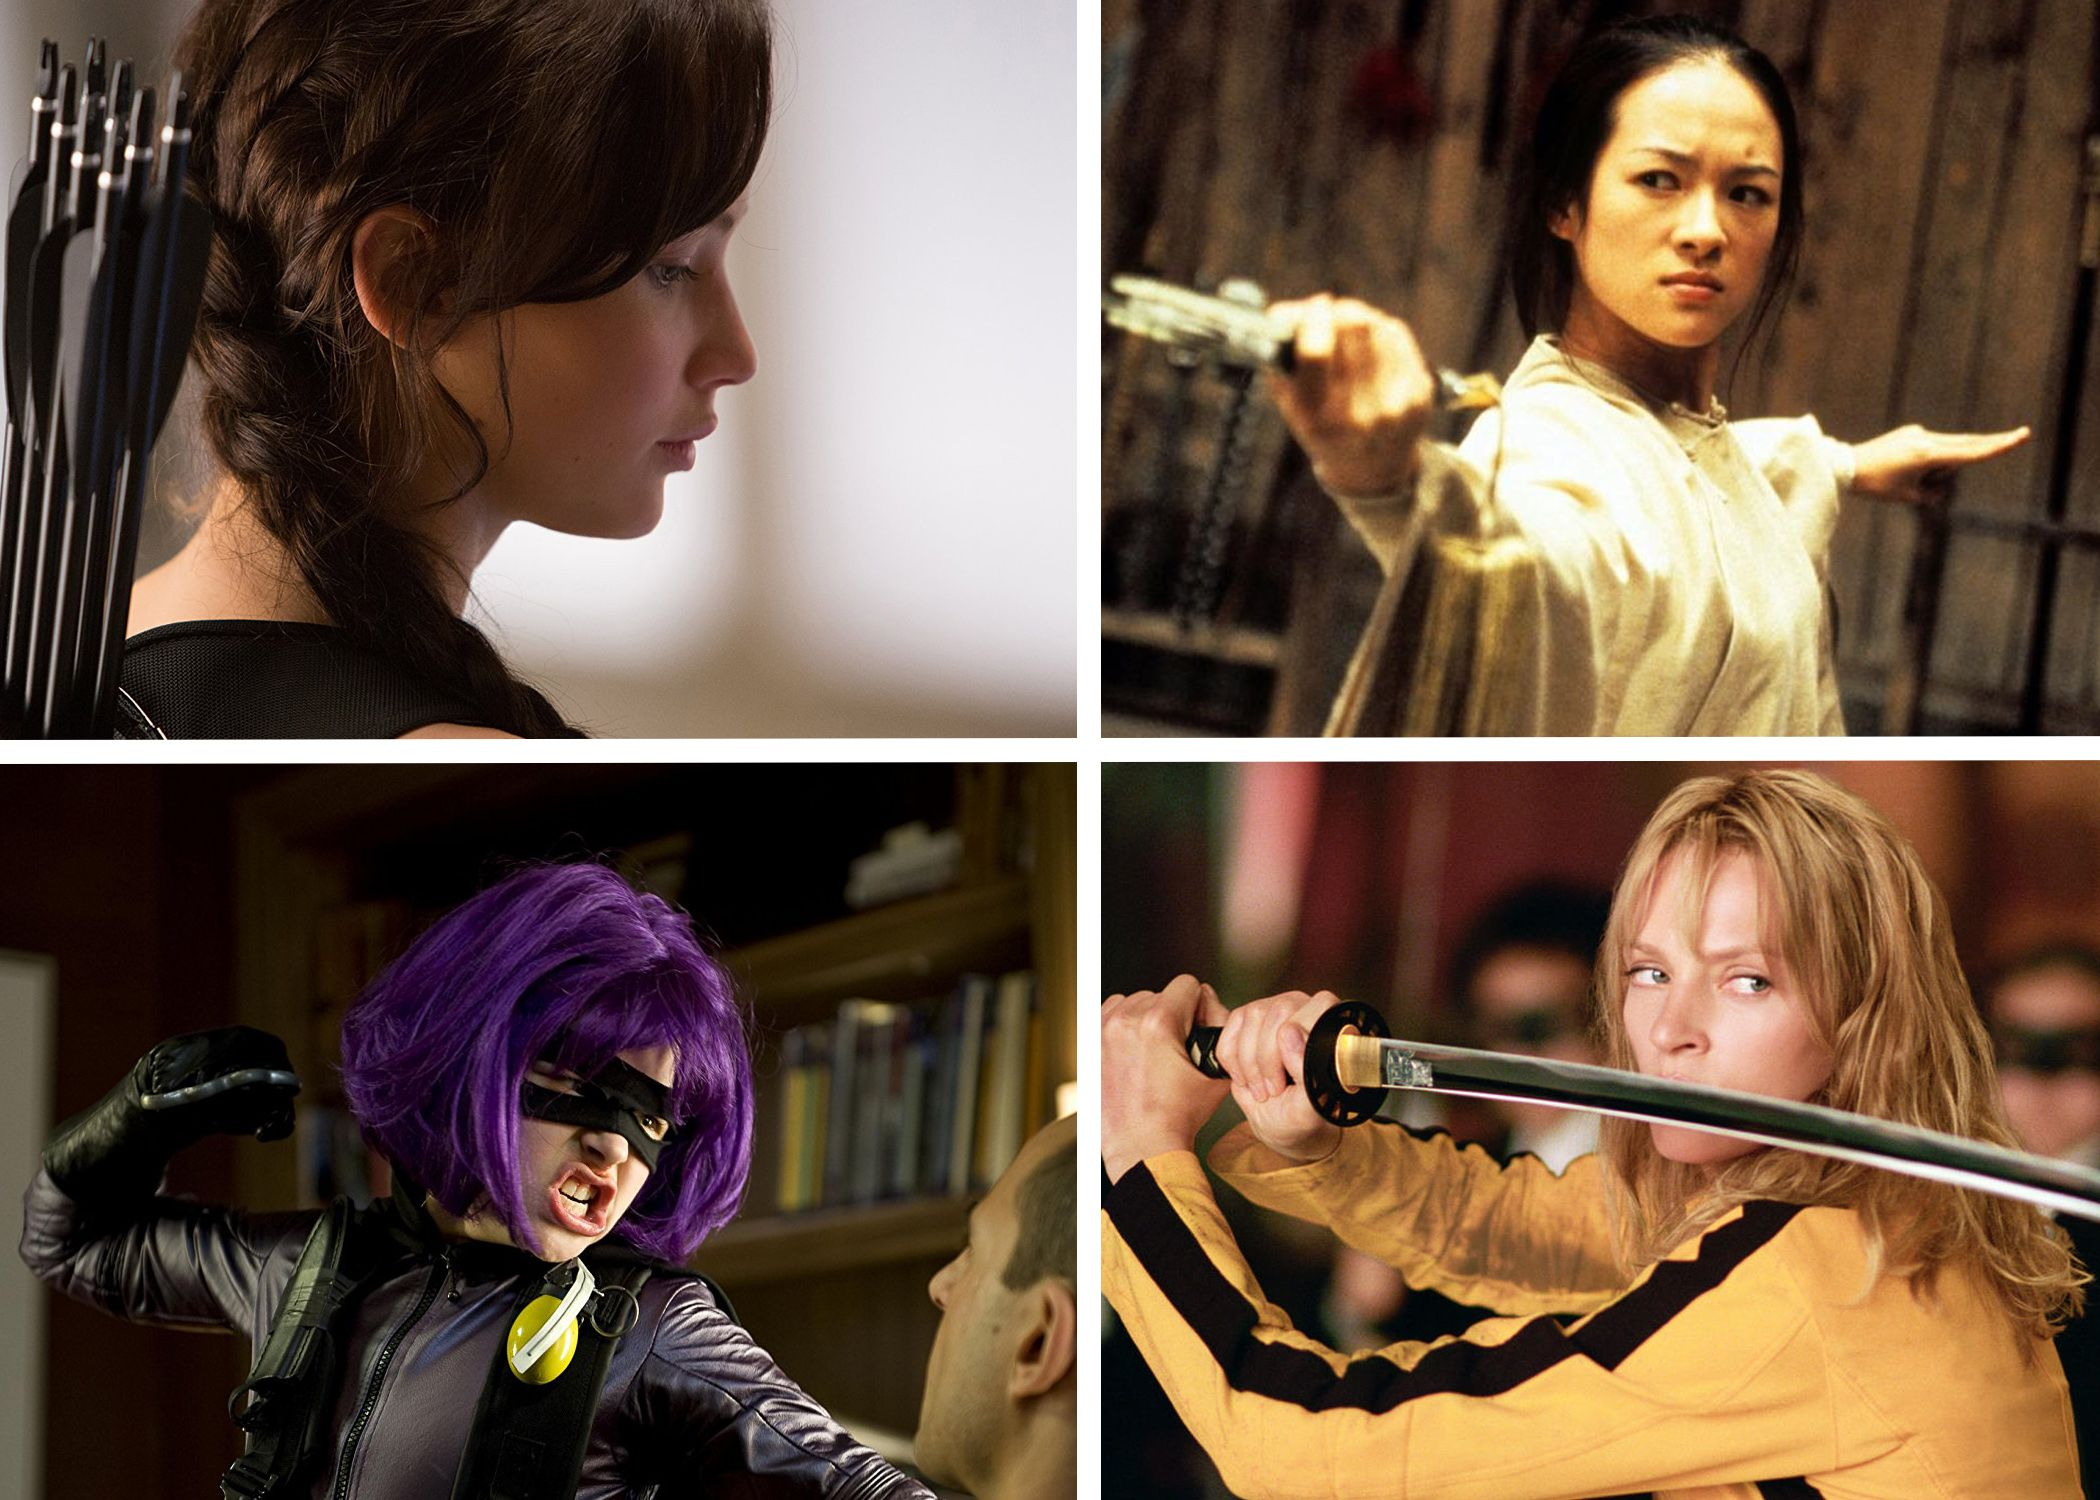 The Highest Grossing Action Films Featuring A Female Lead